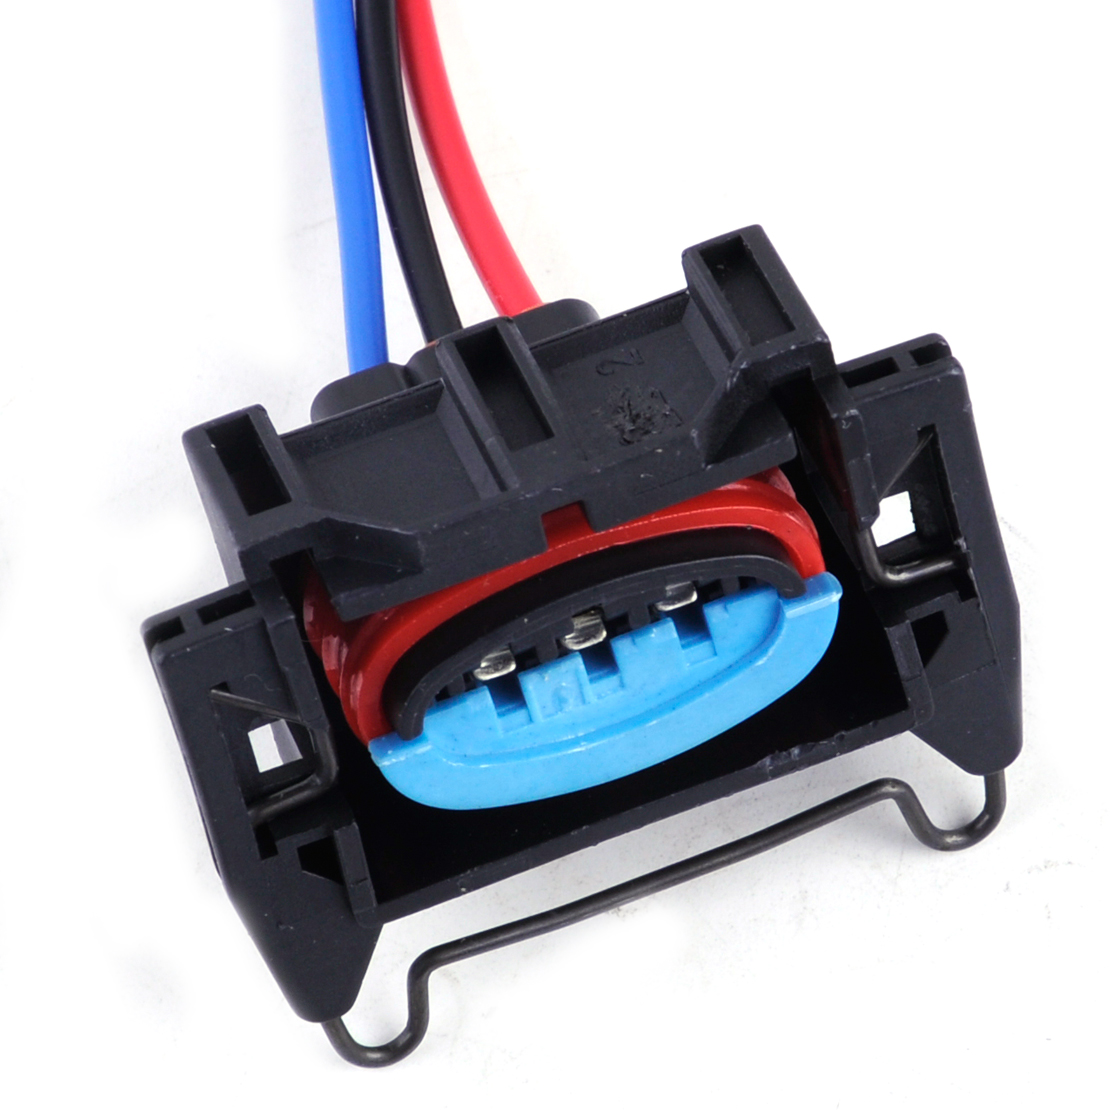 medium resolution of citall new ignition coil pack wiring harness connector 645 302 3u2z14s411tna 1p1727 57 5508 for ford focus ranger contour mazda in ignition coil from